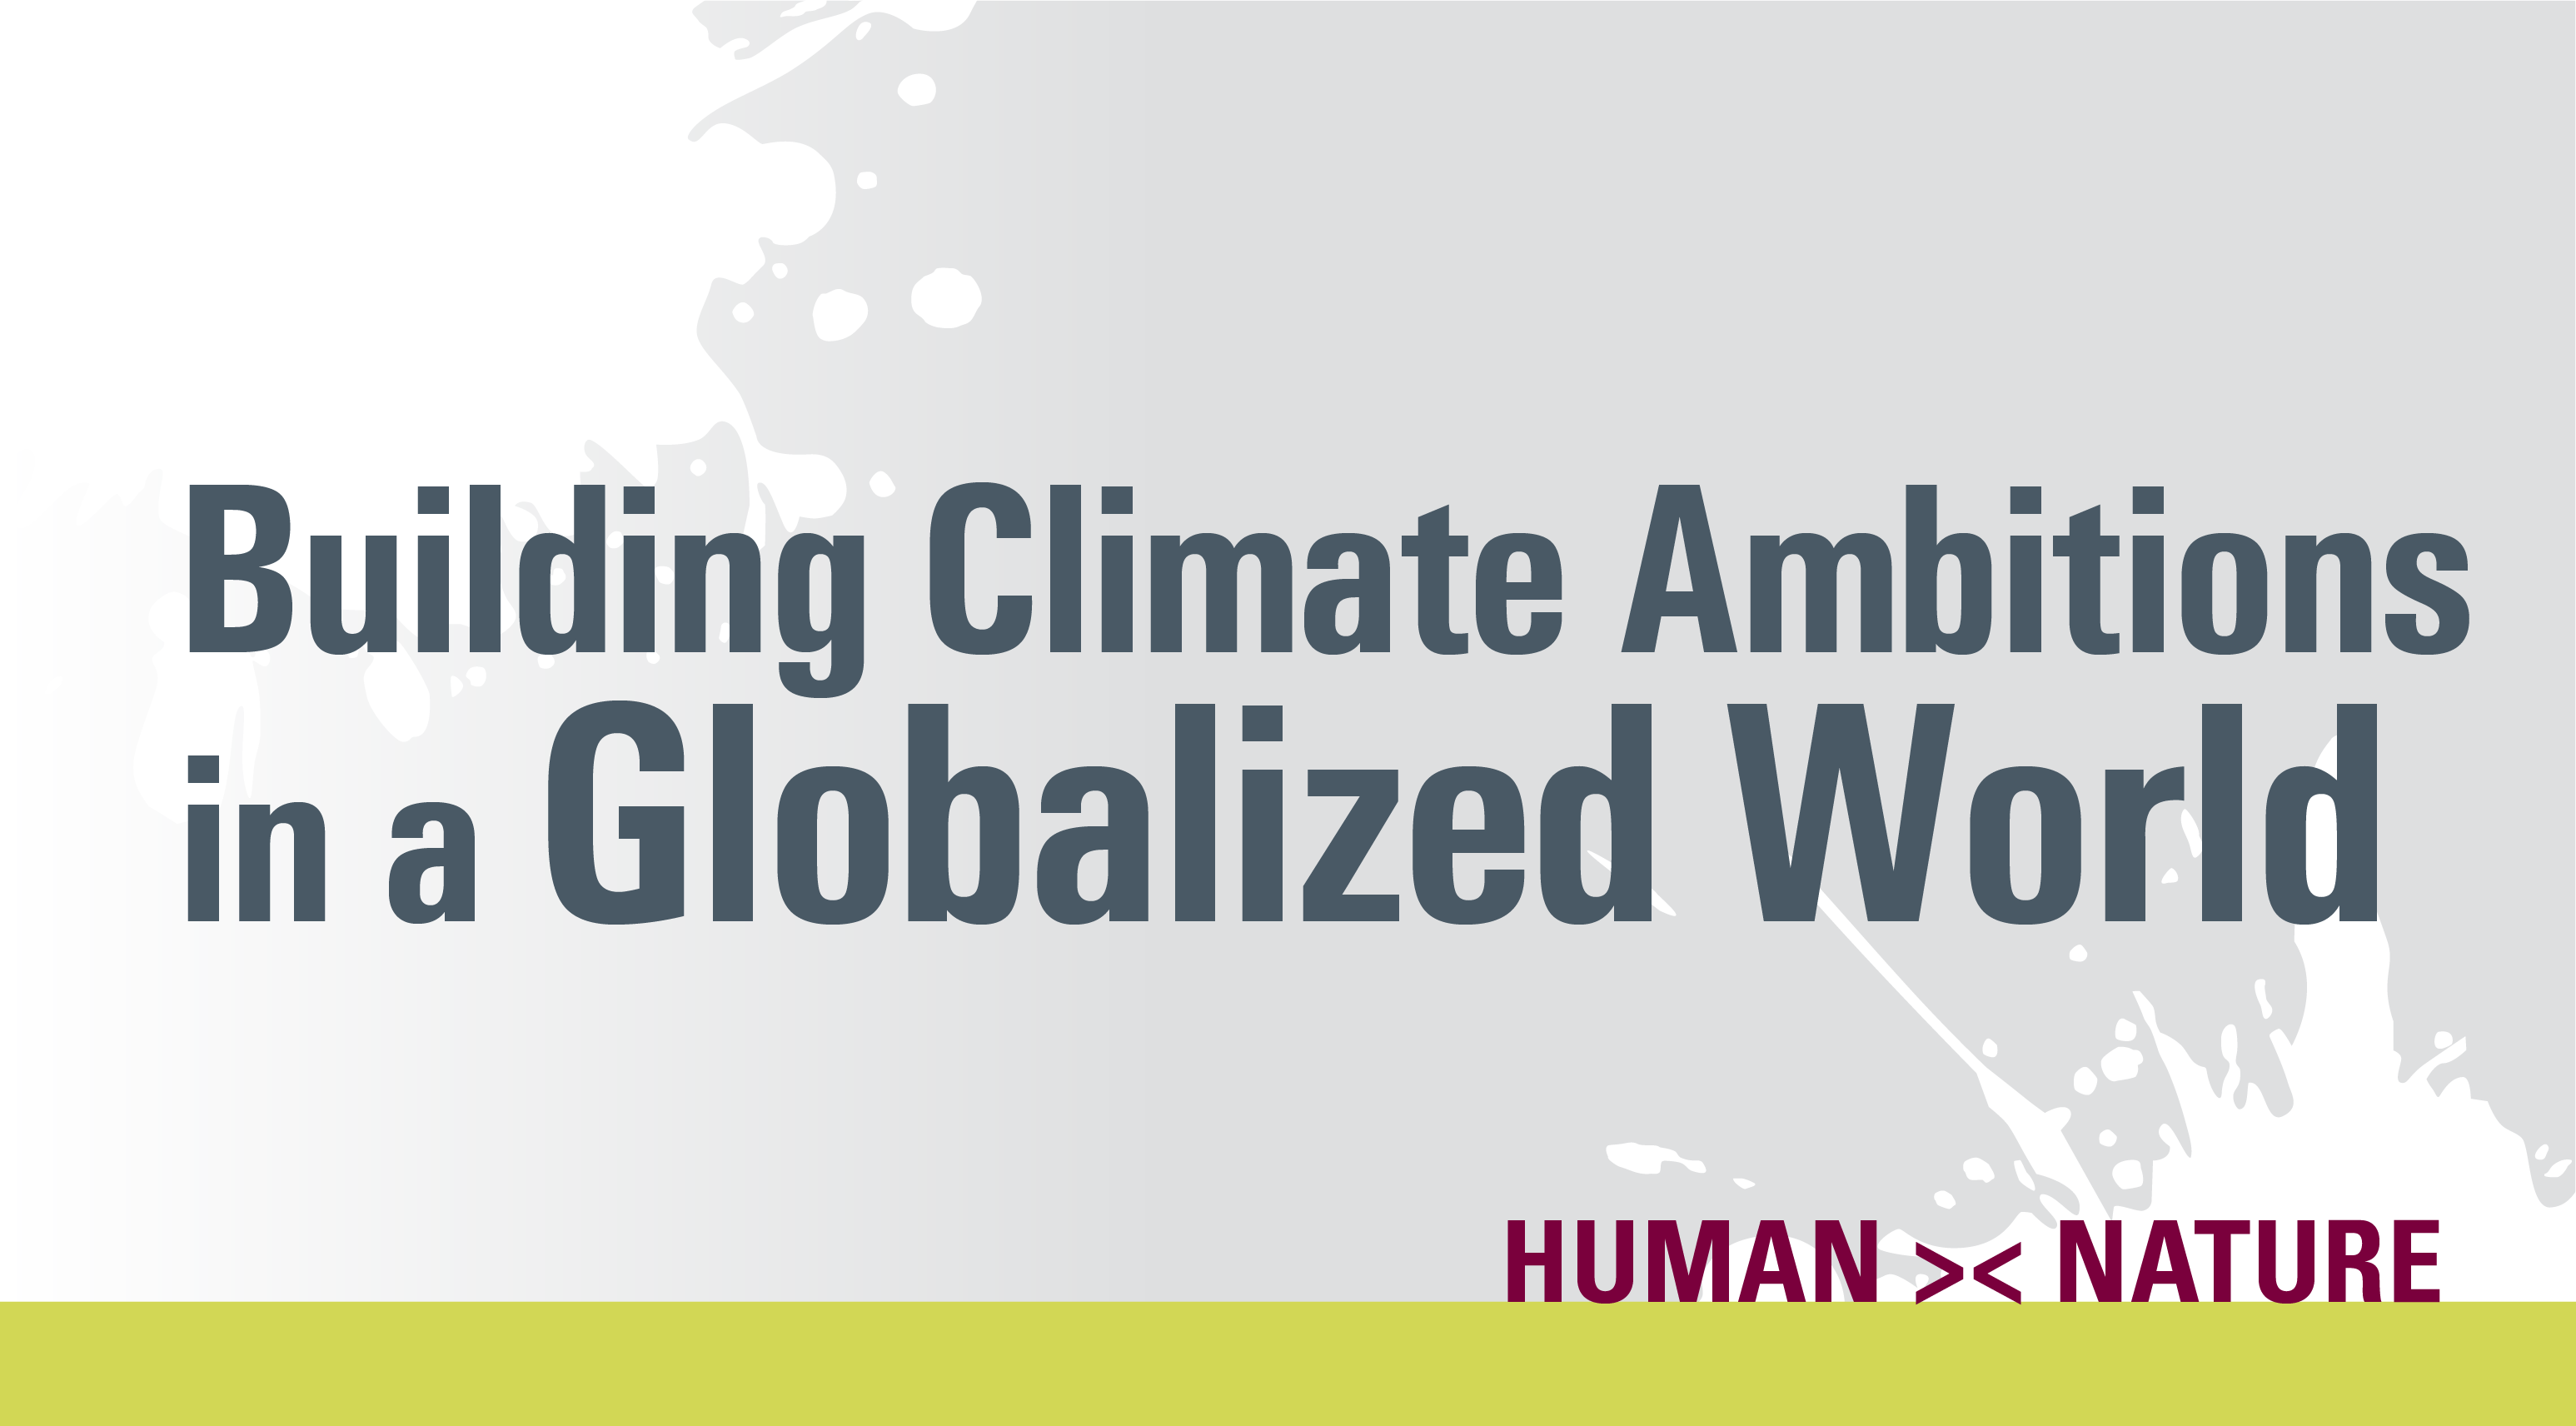 text only image: building climate ambitions in a globalized world